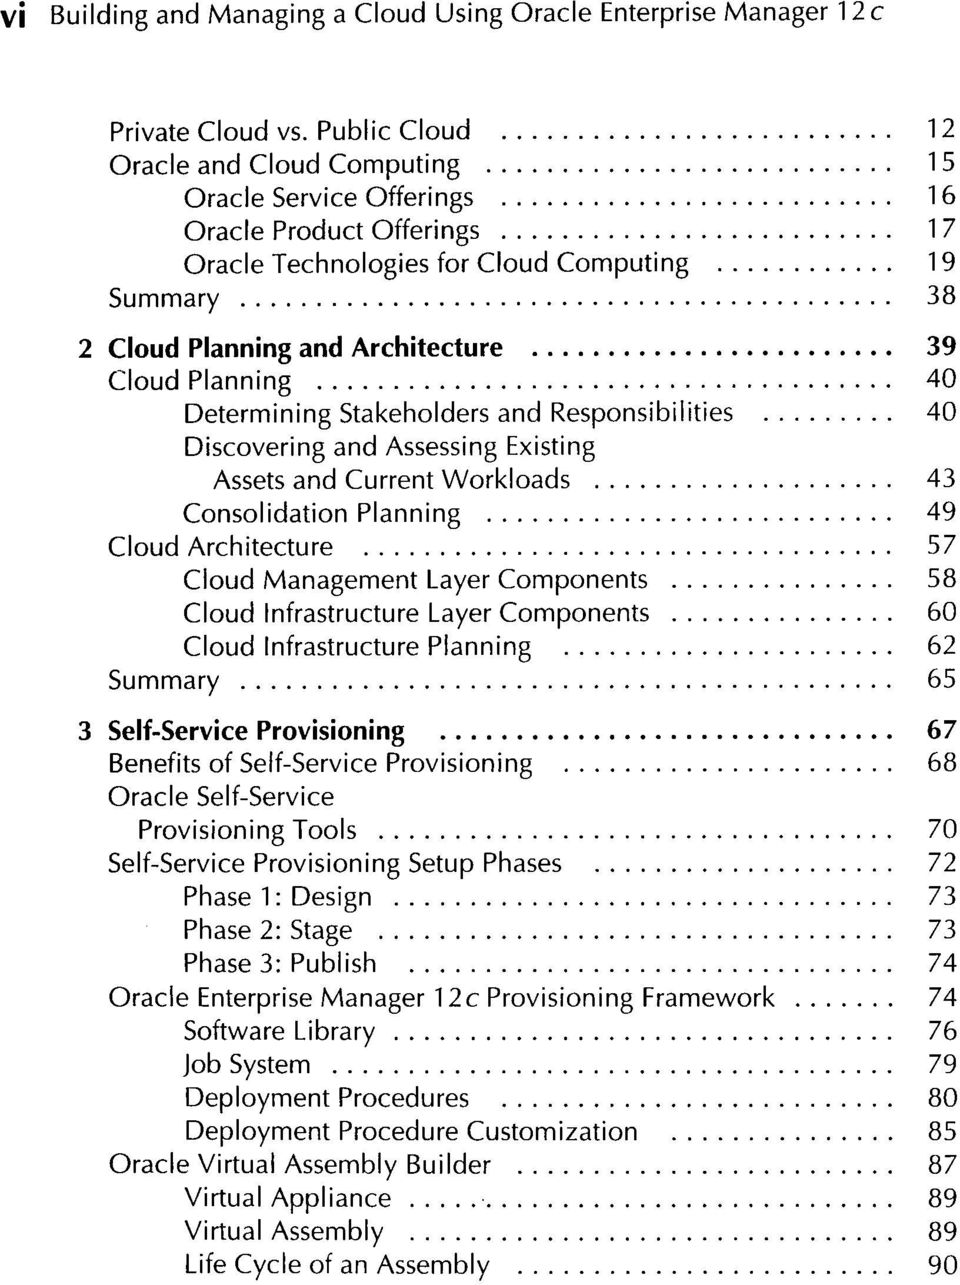 Planning 40 Determining Stakeholders and Responsibilities 40 Discovering and Assessing Existing Assets and Current Workloads 43 Consolidation Planning 49 Cloud Architecture 57 Cloud Management Layer